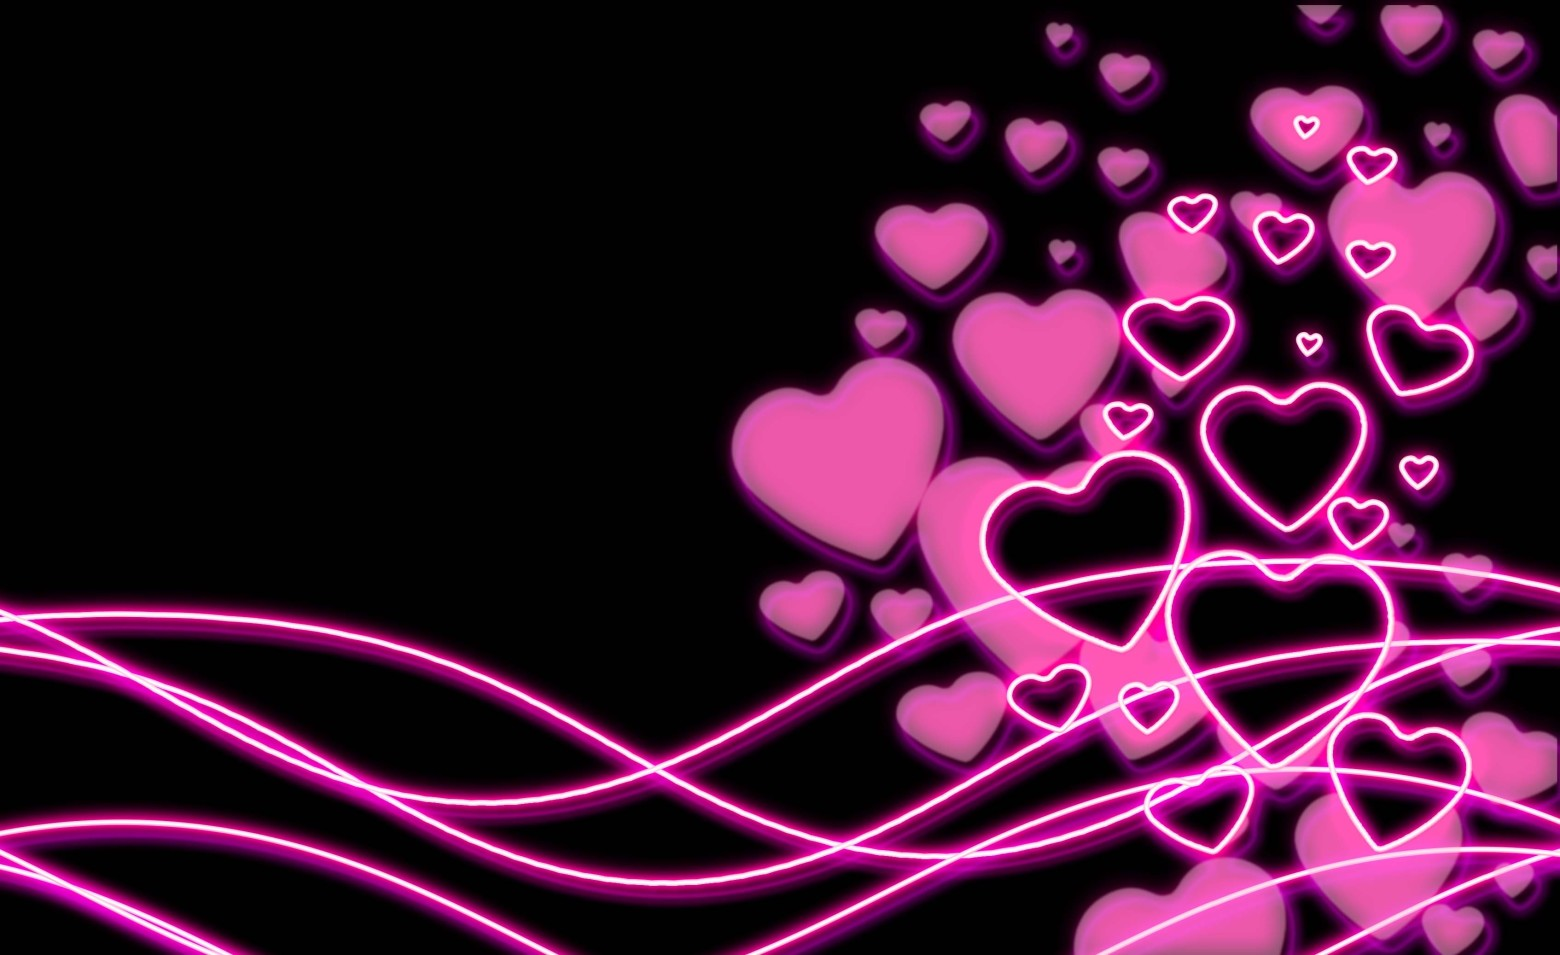 background-abstrait-abstract-coeur-rose-love-1560x955